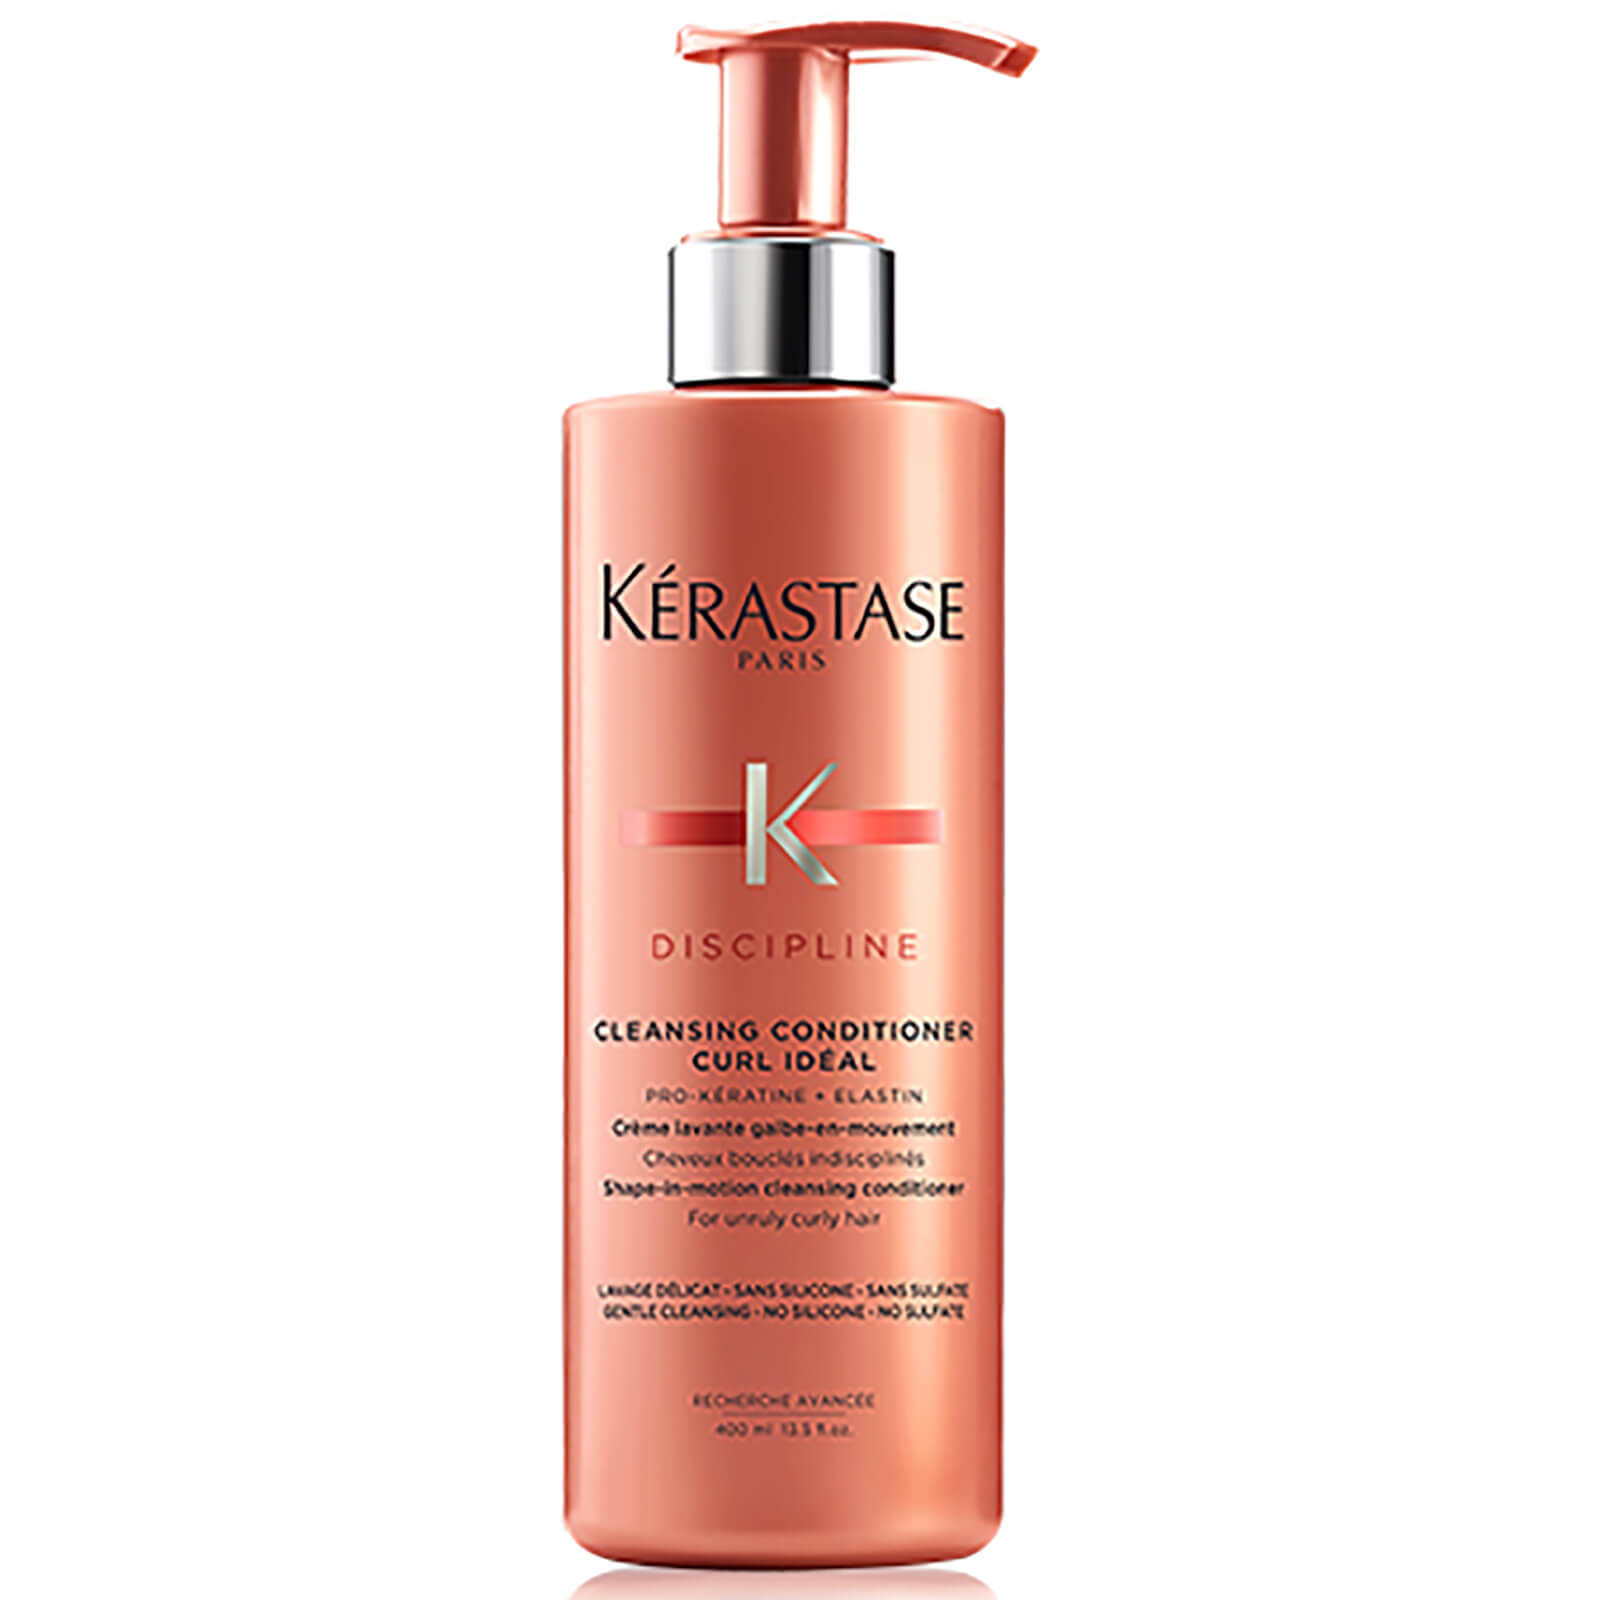 Kérastase Discipline Cleansing Conditioner Curl Ideal 400 ml